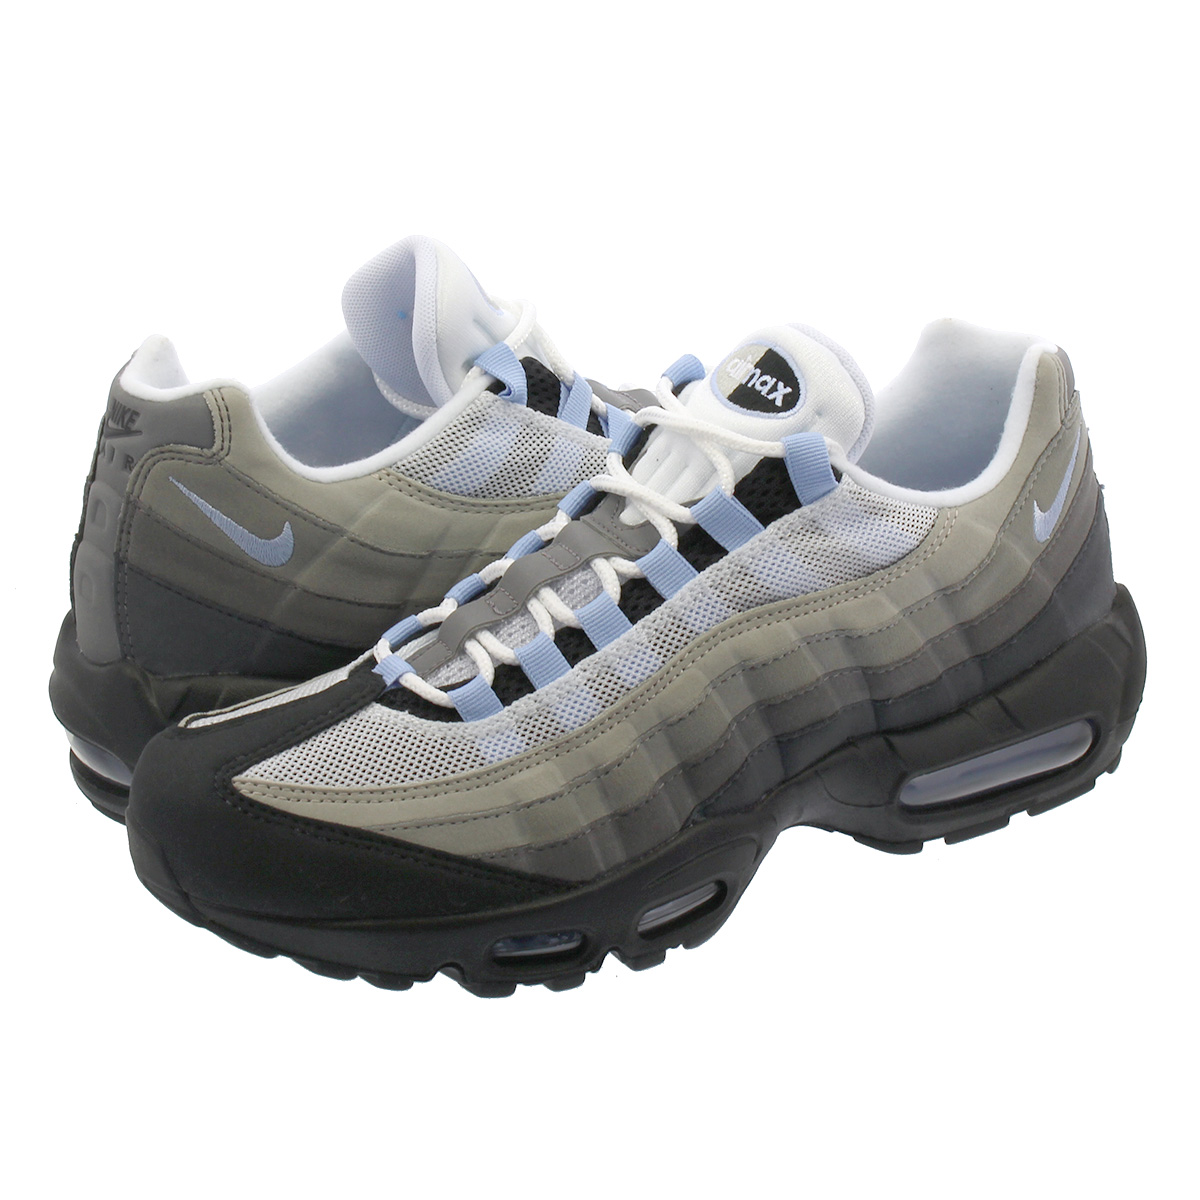 c1f36afb2 NIKE AIR MAX 95 Kie Ney AMAX 95 BLACK/ALUMINUM/ANTHRACITE cd1529-001 ...